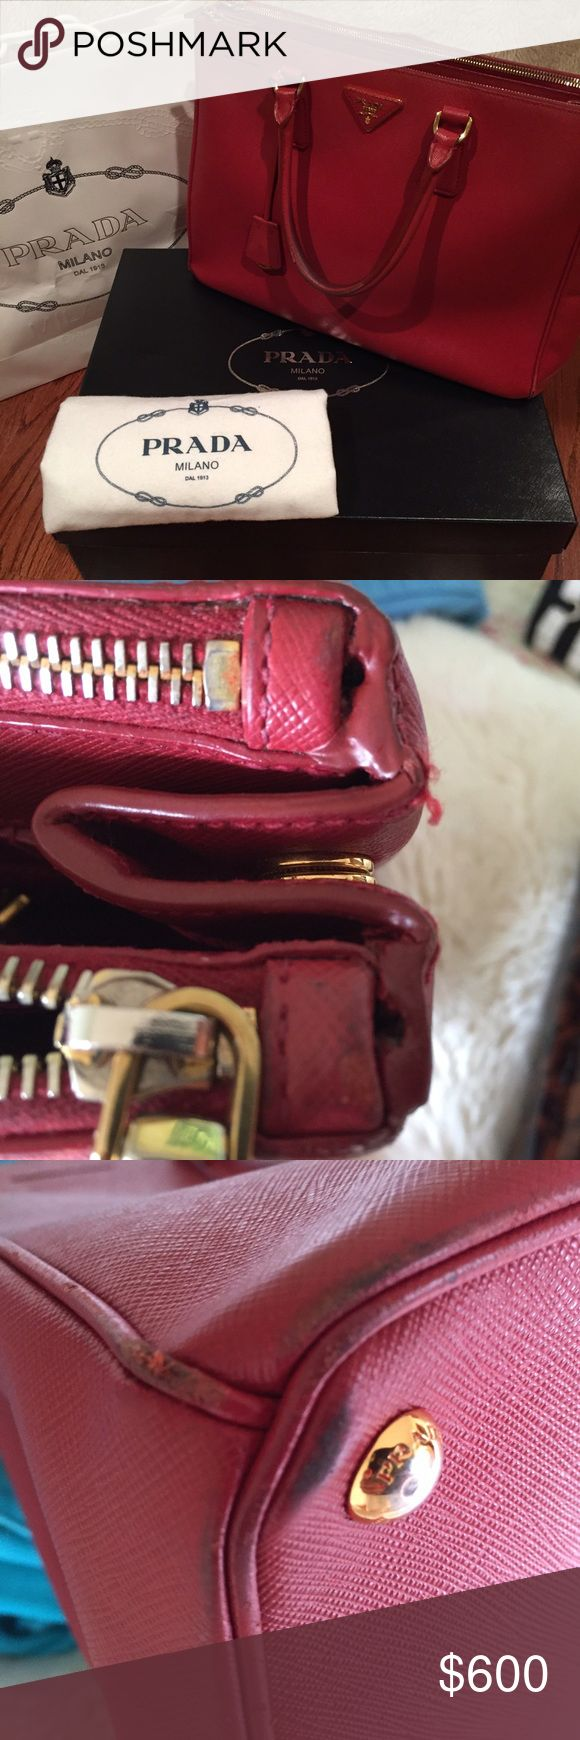 Pre-loved PRADA Saffiano Lux Large This bag comes with authenticity card, original shopping bag and dust cover. Perfect color for autumn and winter. Prada Bags